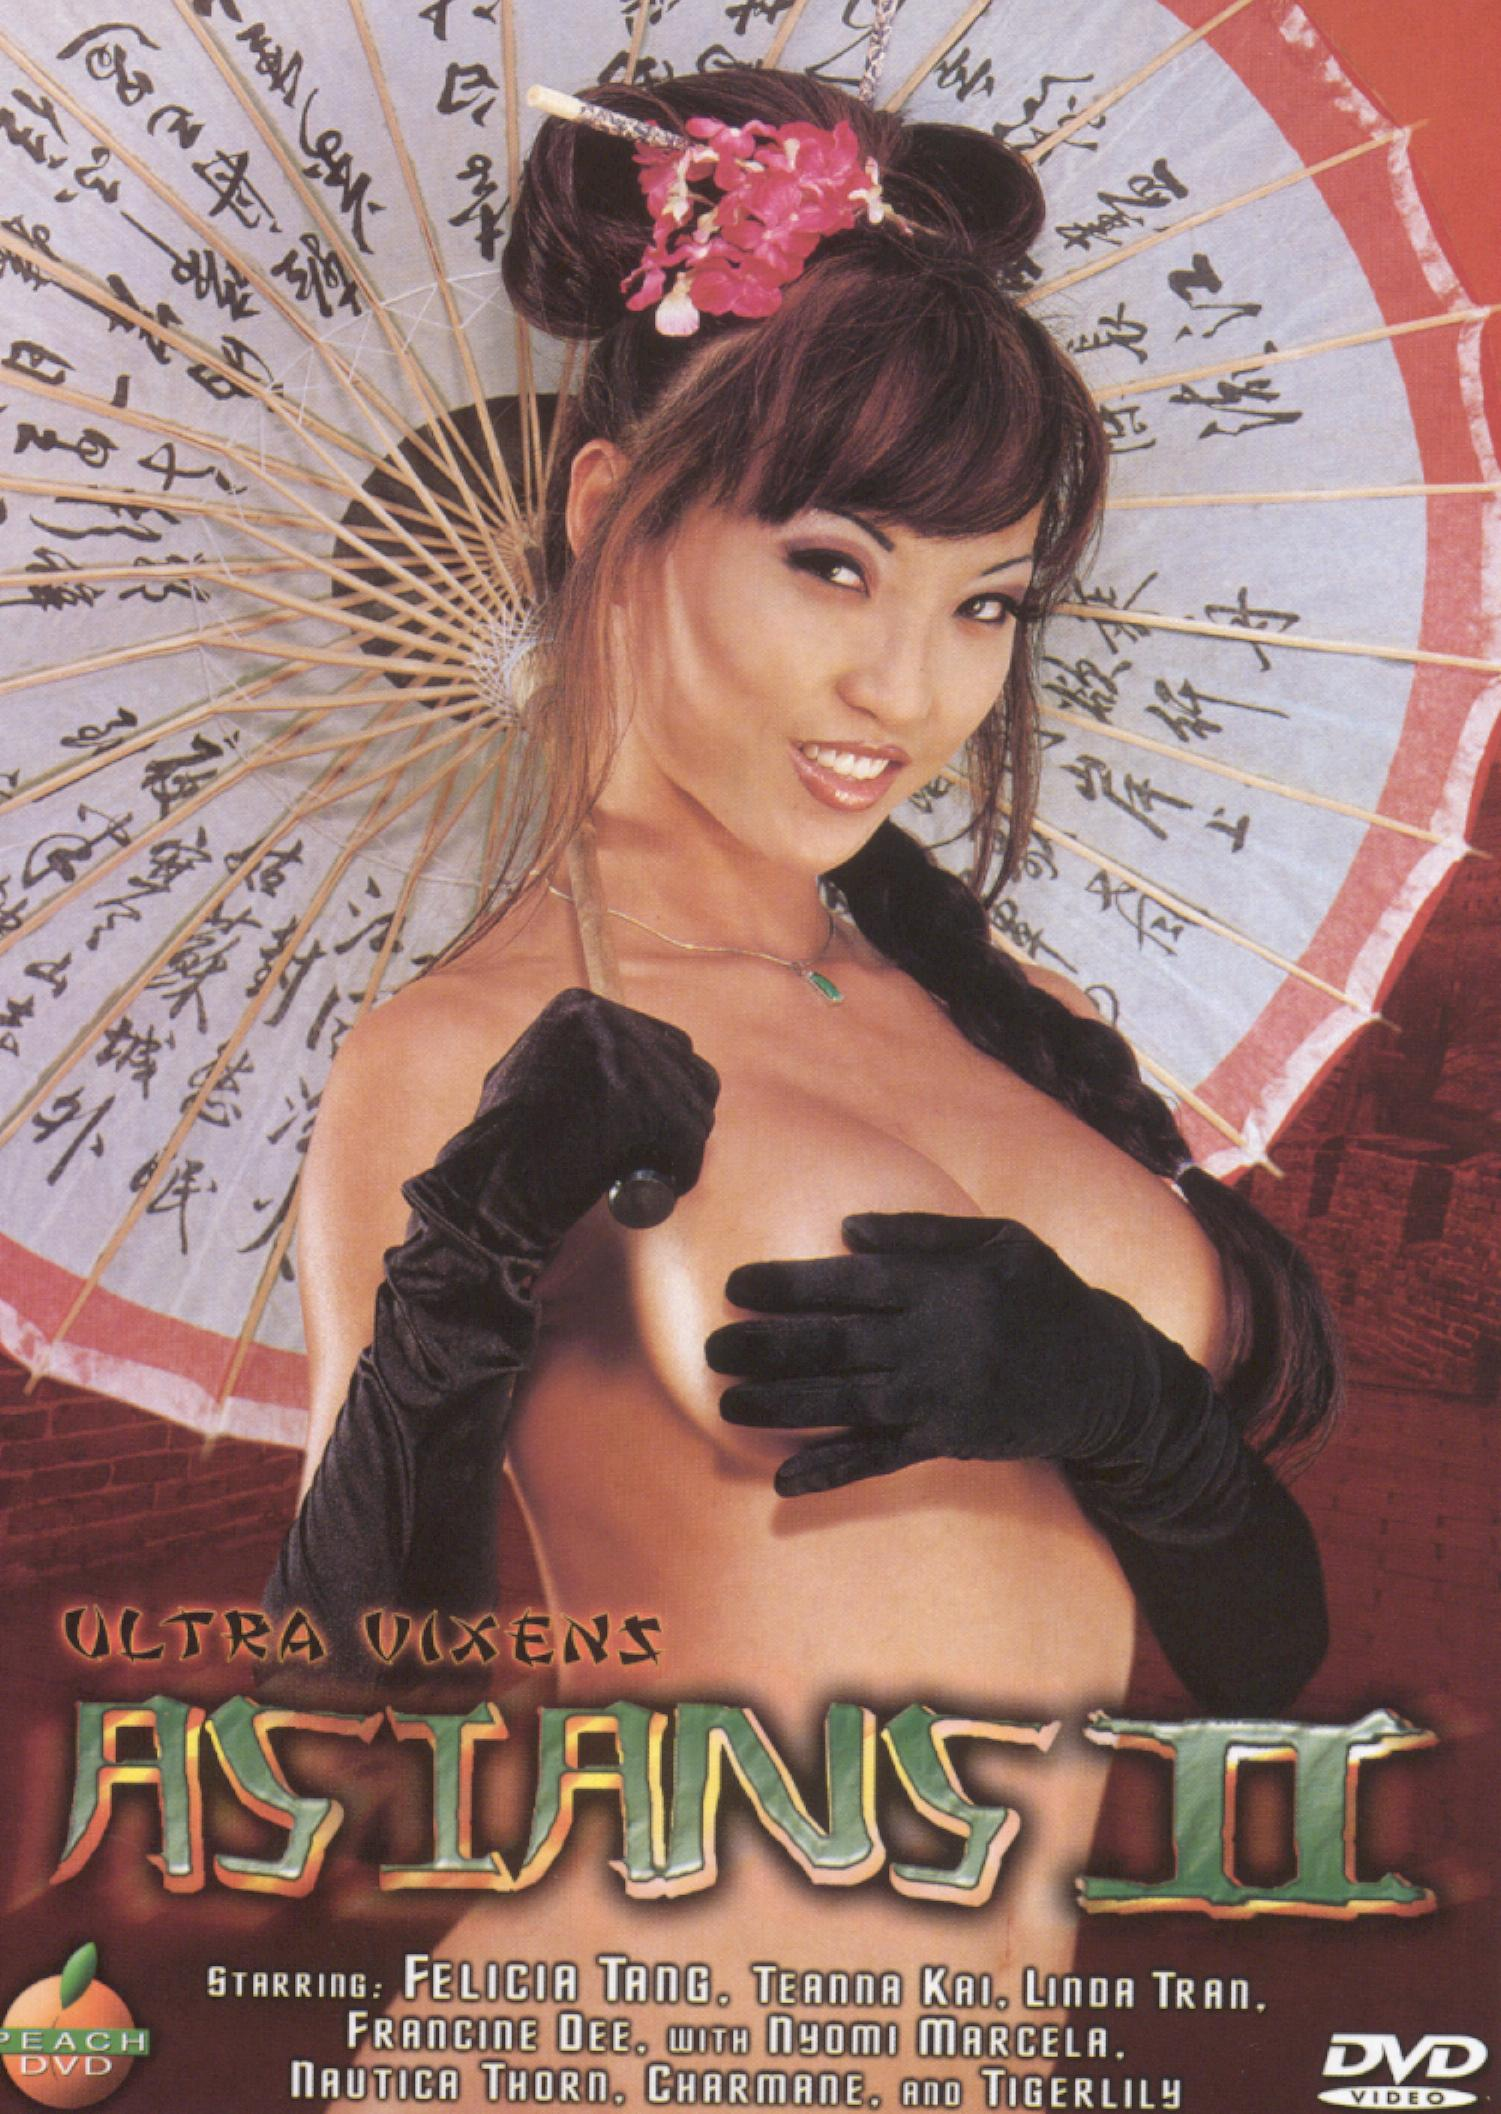 Peach Ultra Vixens: Asian Fever, Vol. 2